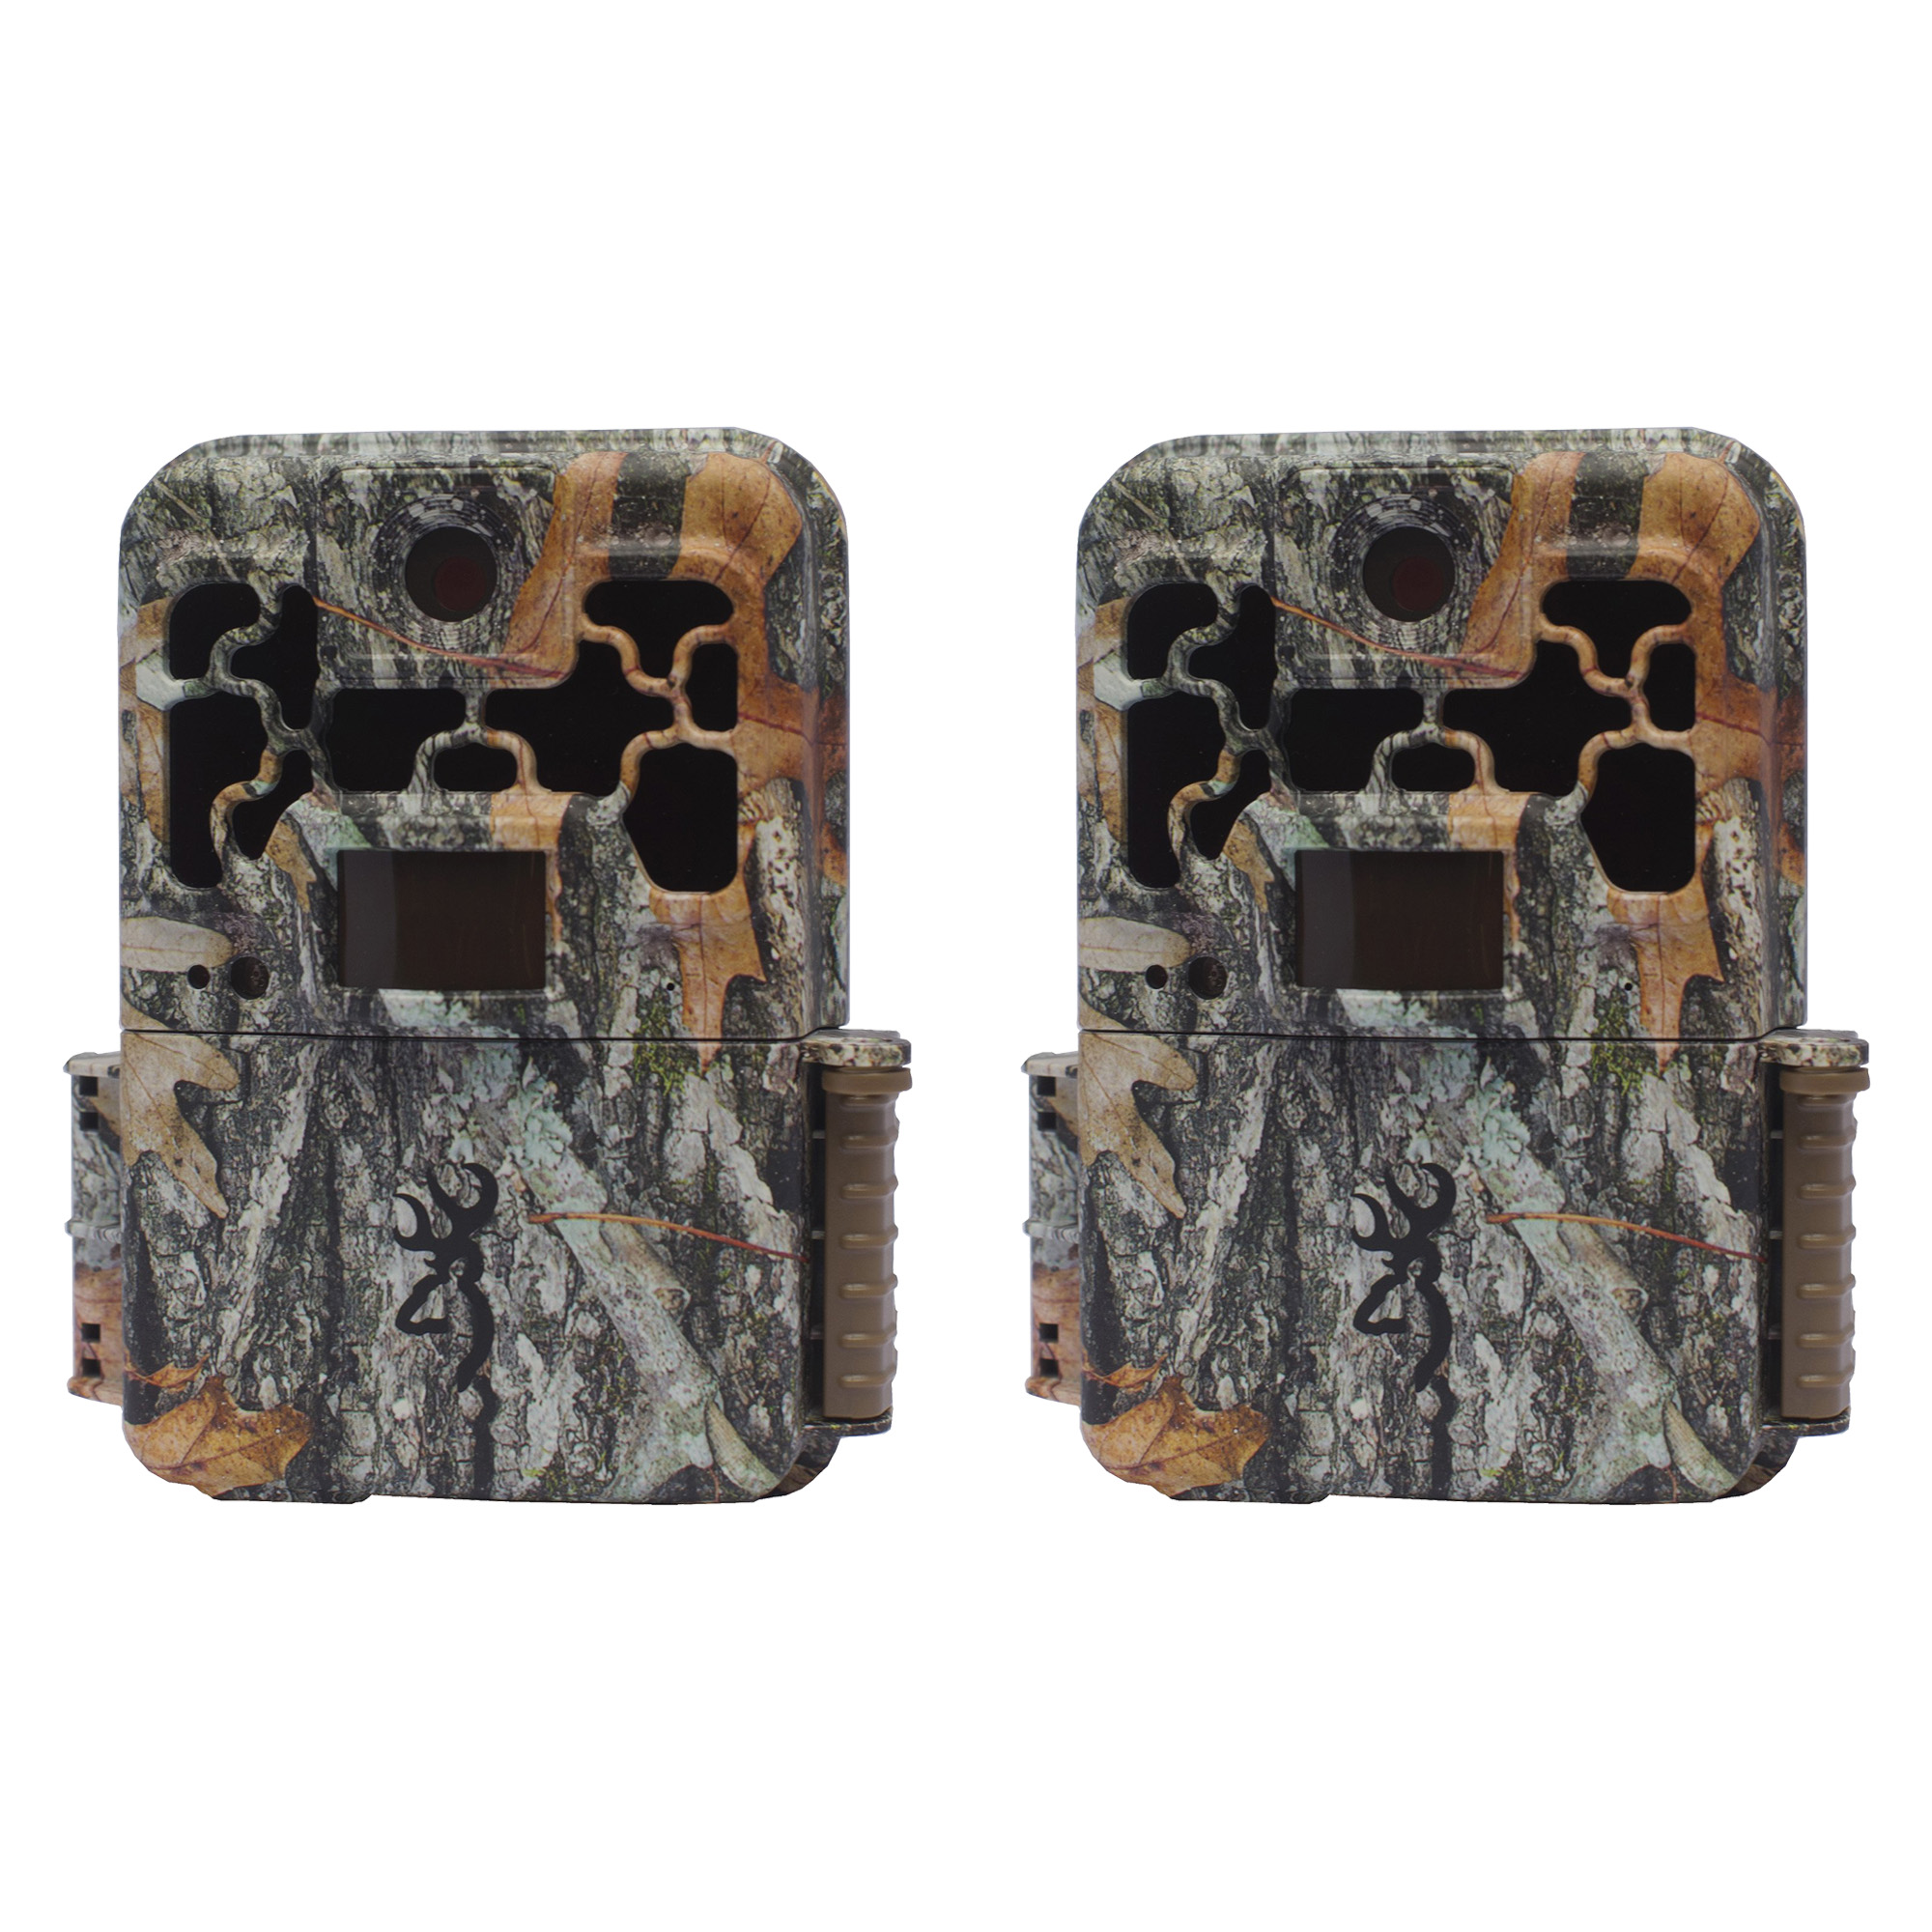 Browning Trail Cameras Spec Ops FHD Platinum 10MP Game Camera, 2 Pack | BTC8FHDP by Browning Trail Cameras